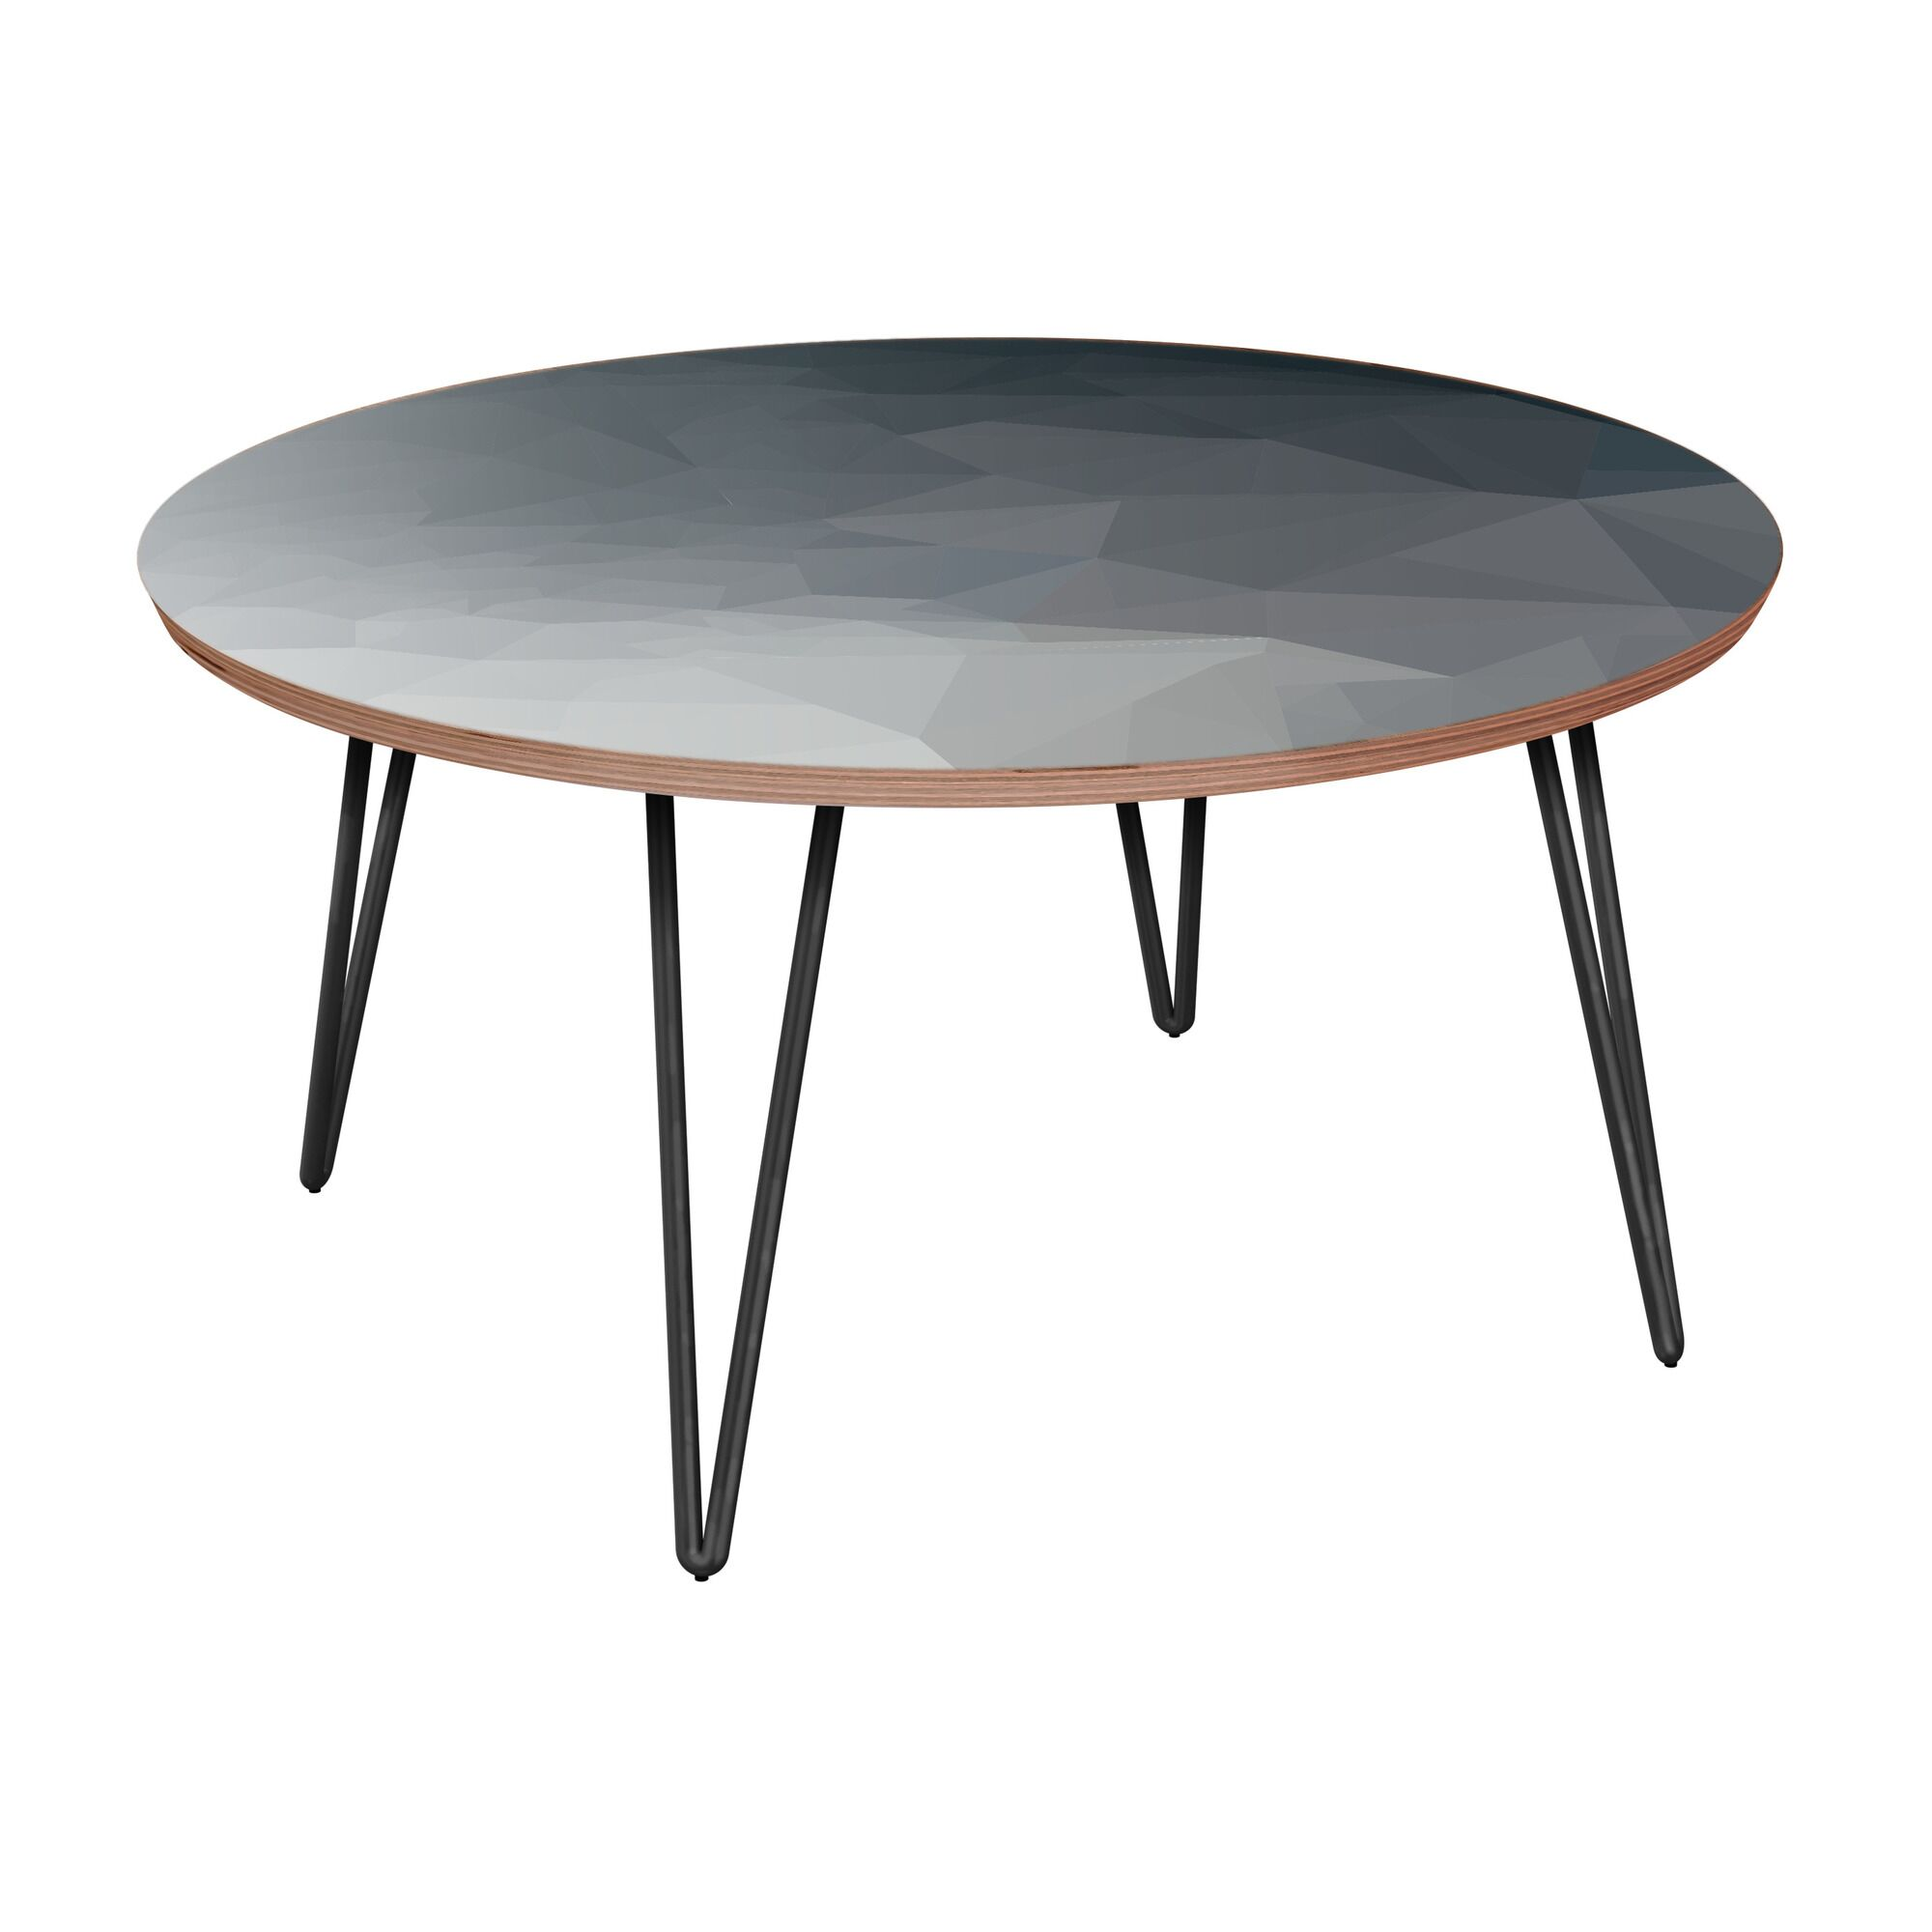 Herdon Coffee Table Table Base Color: Black, Table Top Boarder Color: Walnut, Table Top Color: Gray/Black